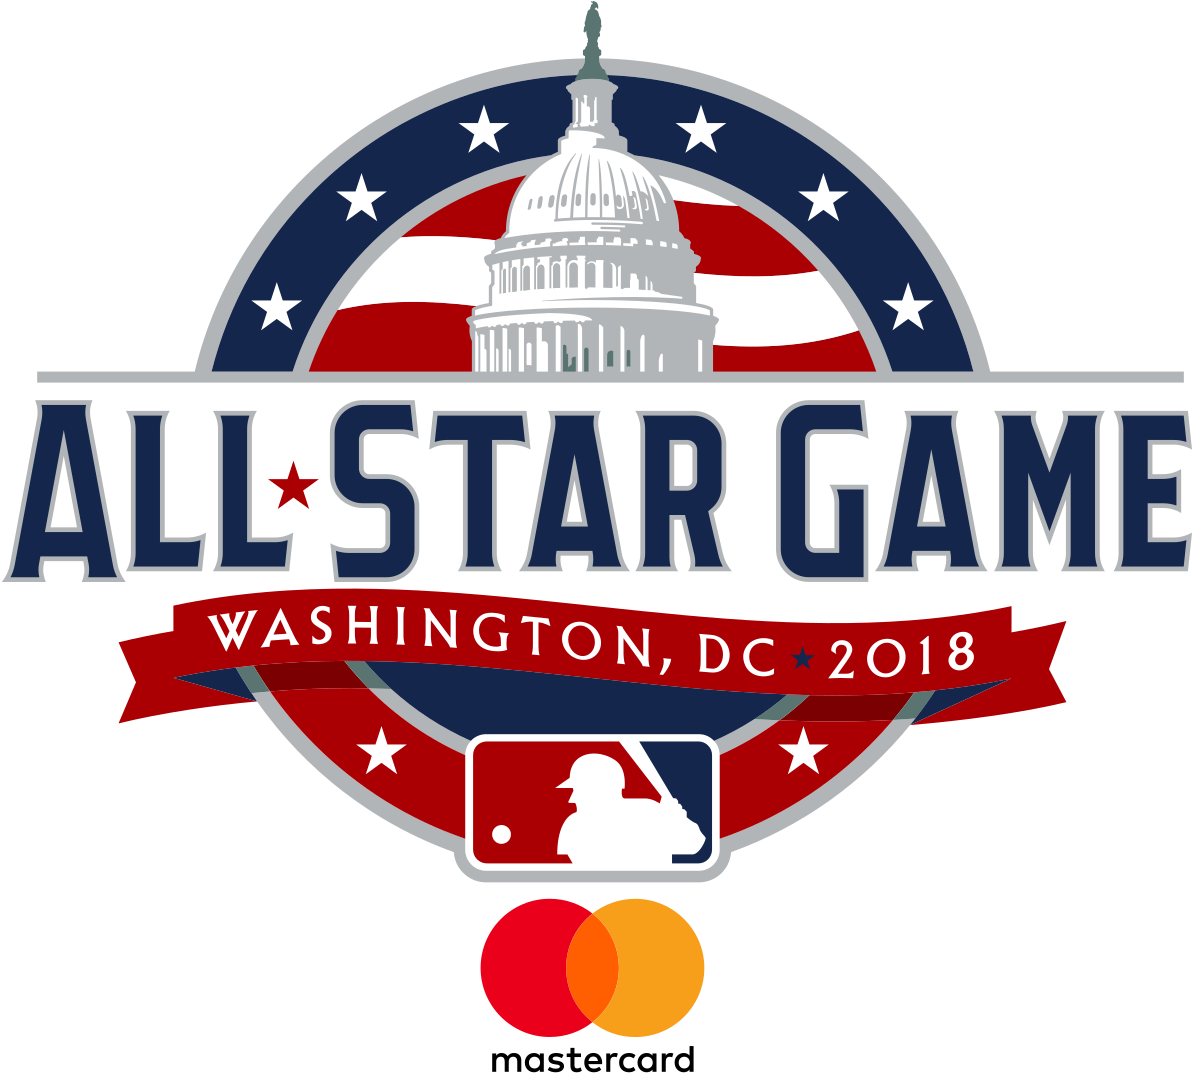 Mlb All Star Game 2018 Logo Png (1200x1080), Png Download